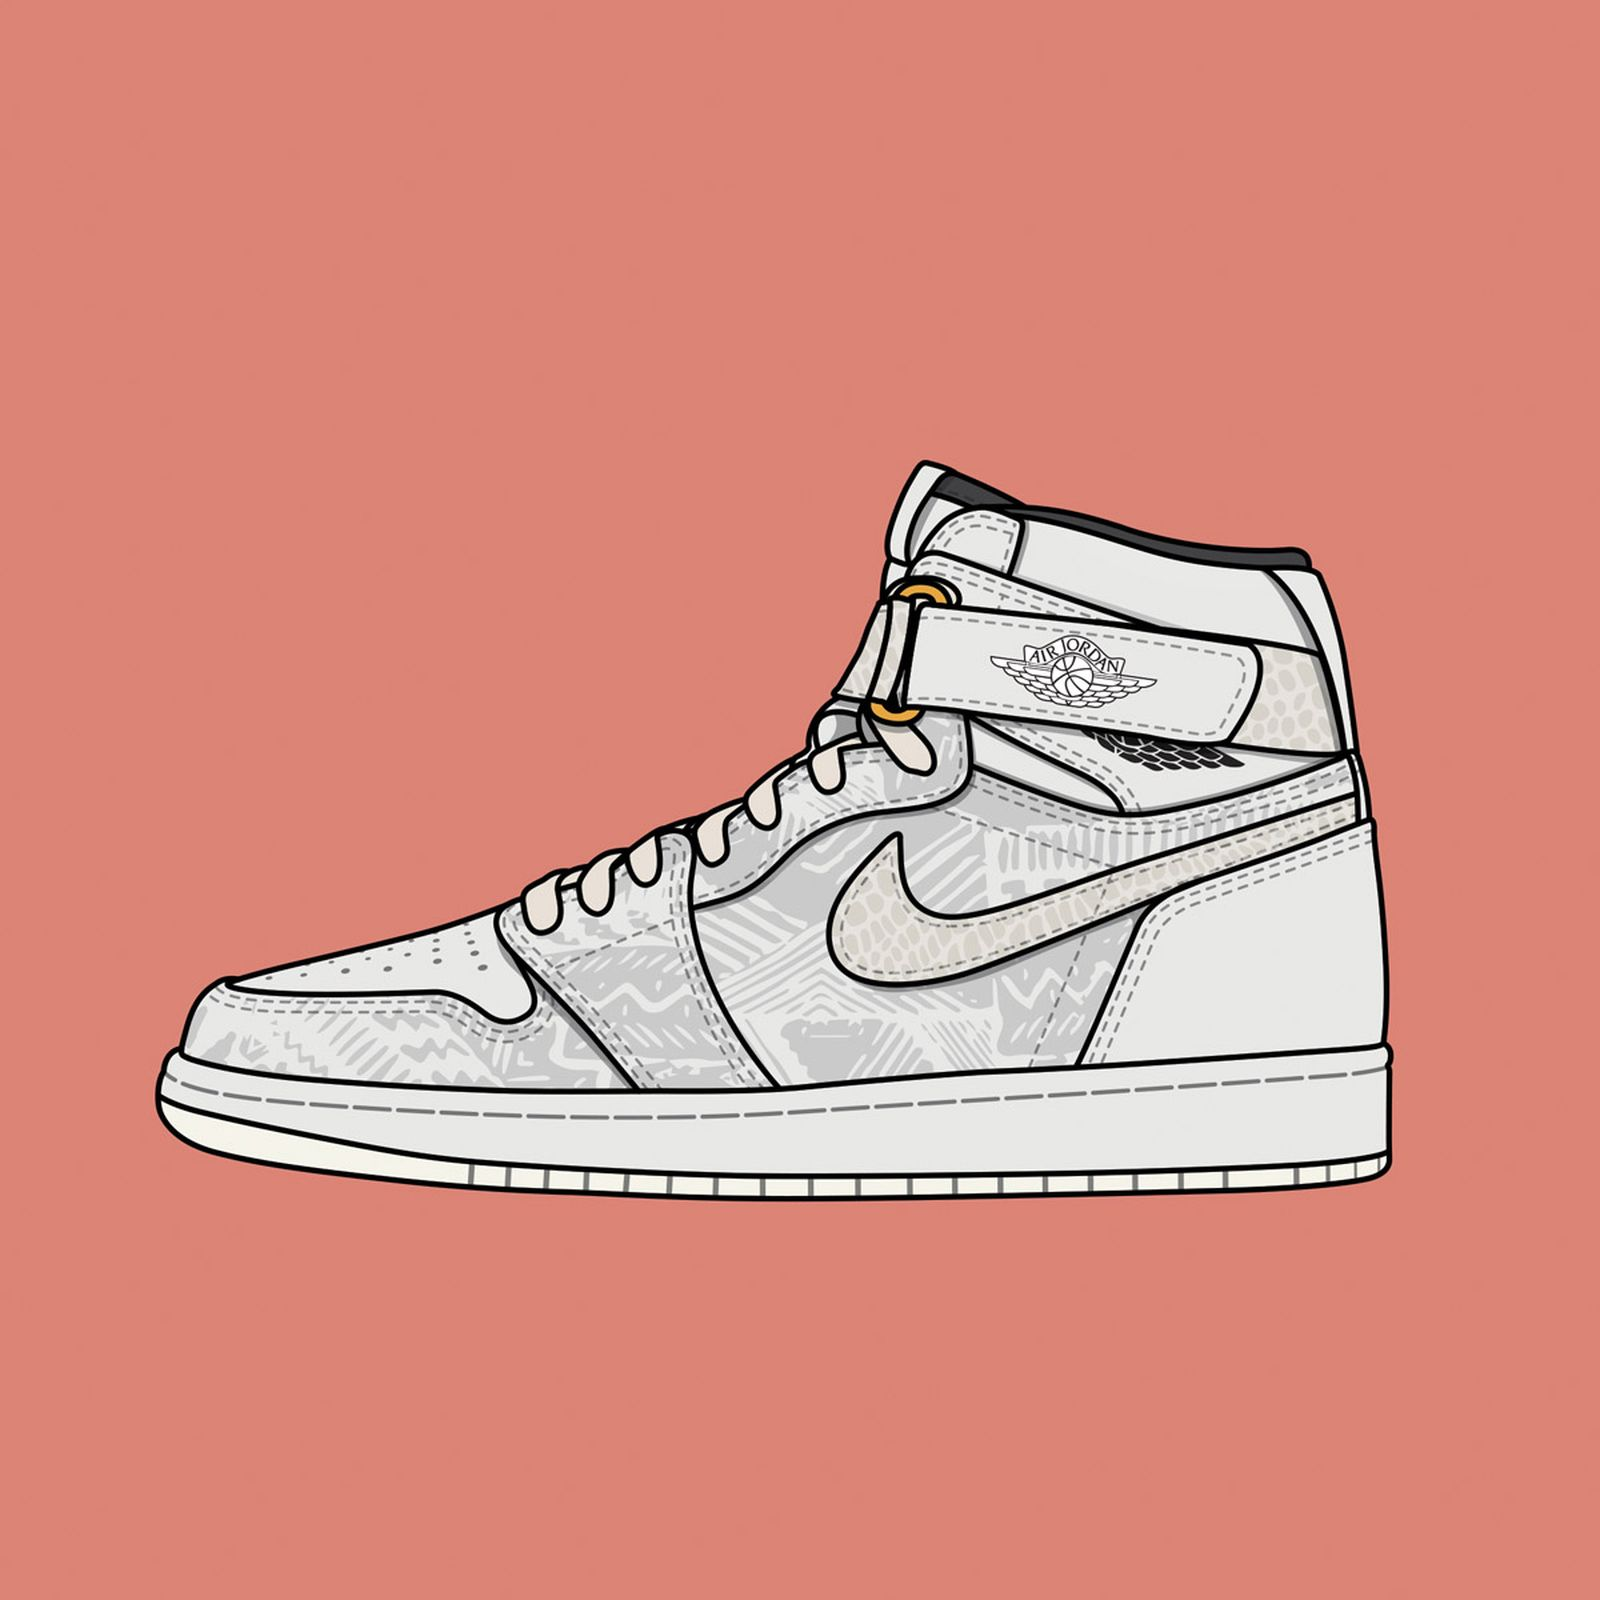 jordan 1 resell value prices Air Jordan Nike jordan brand